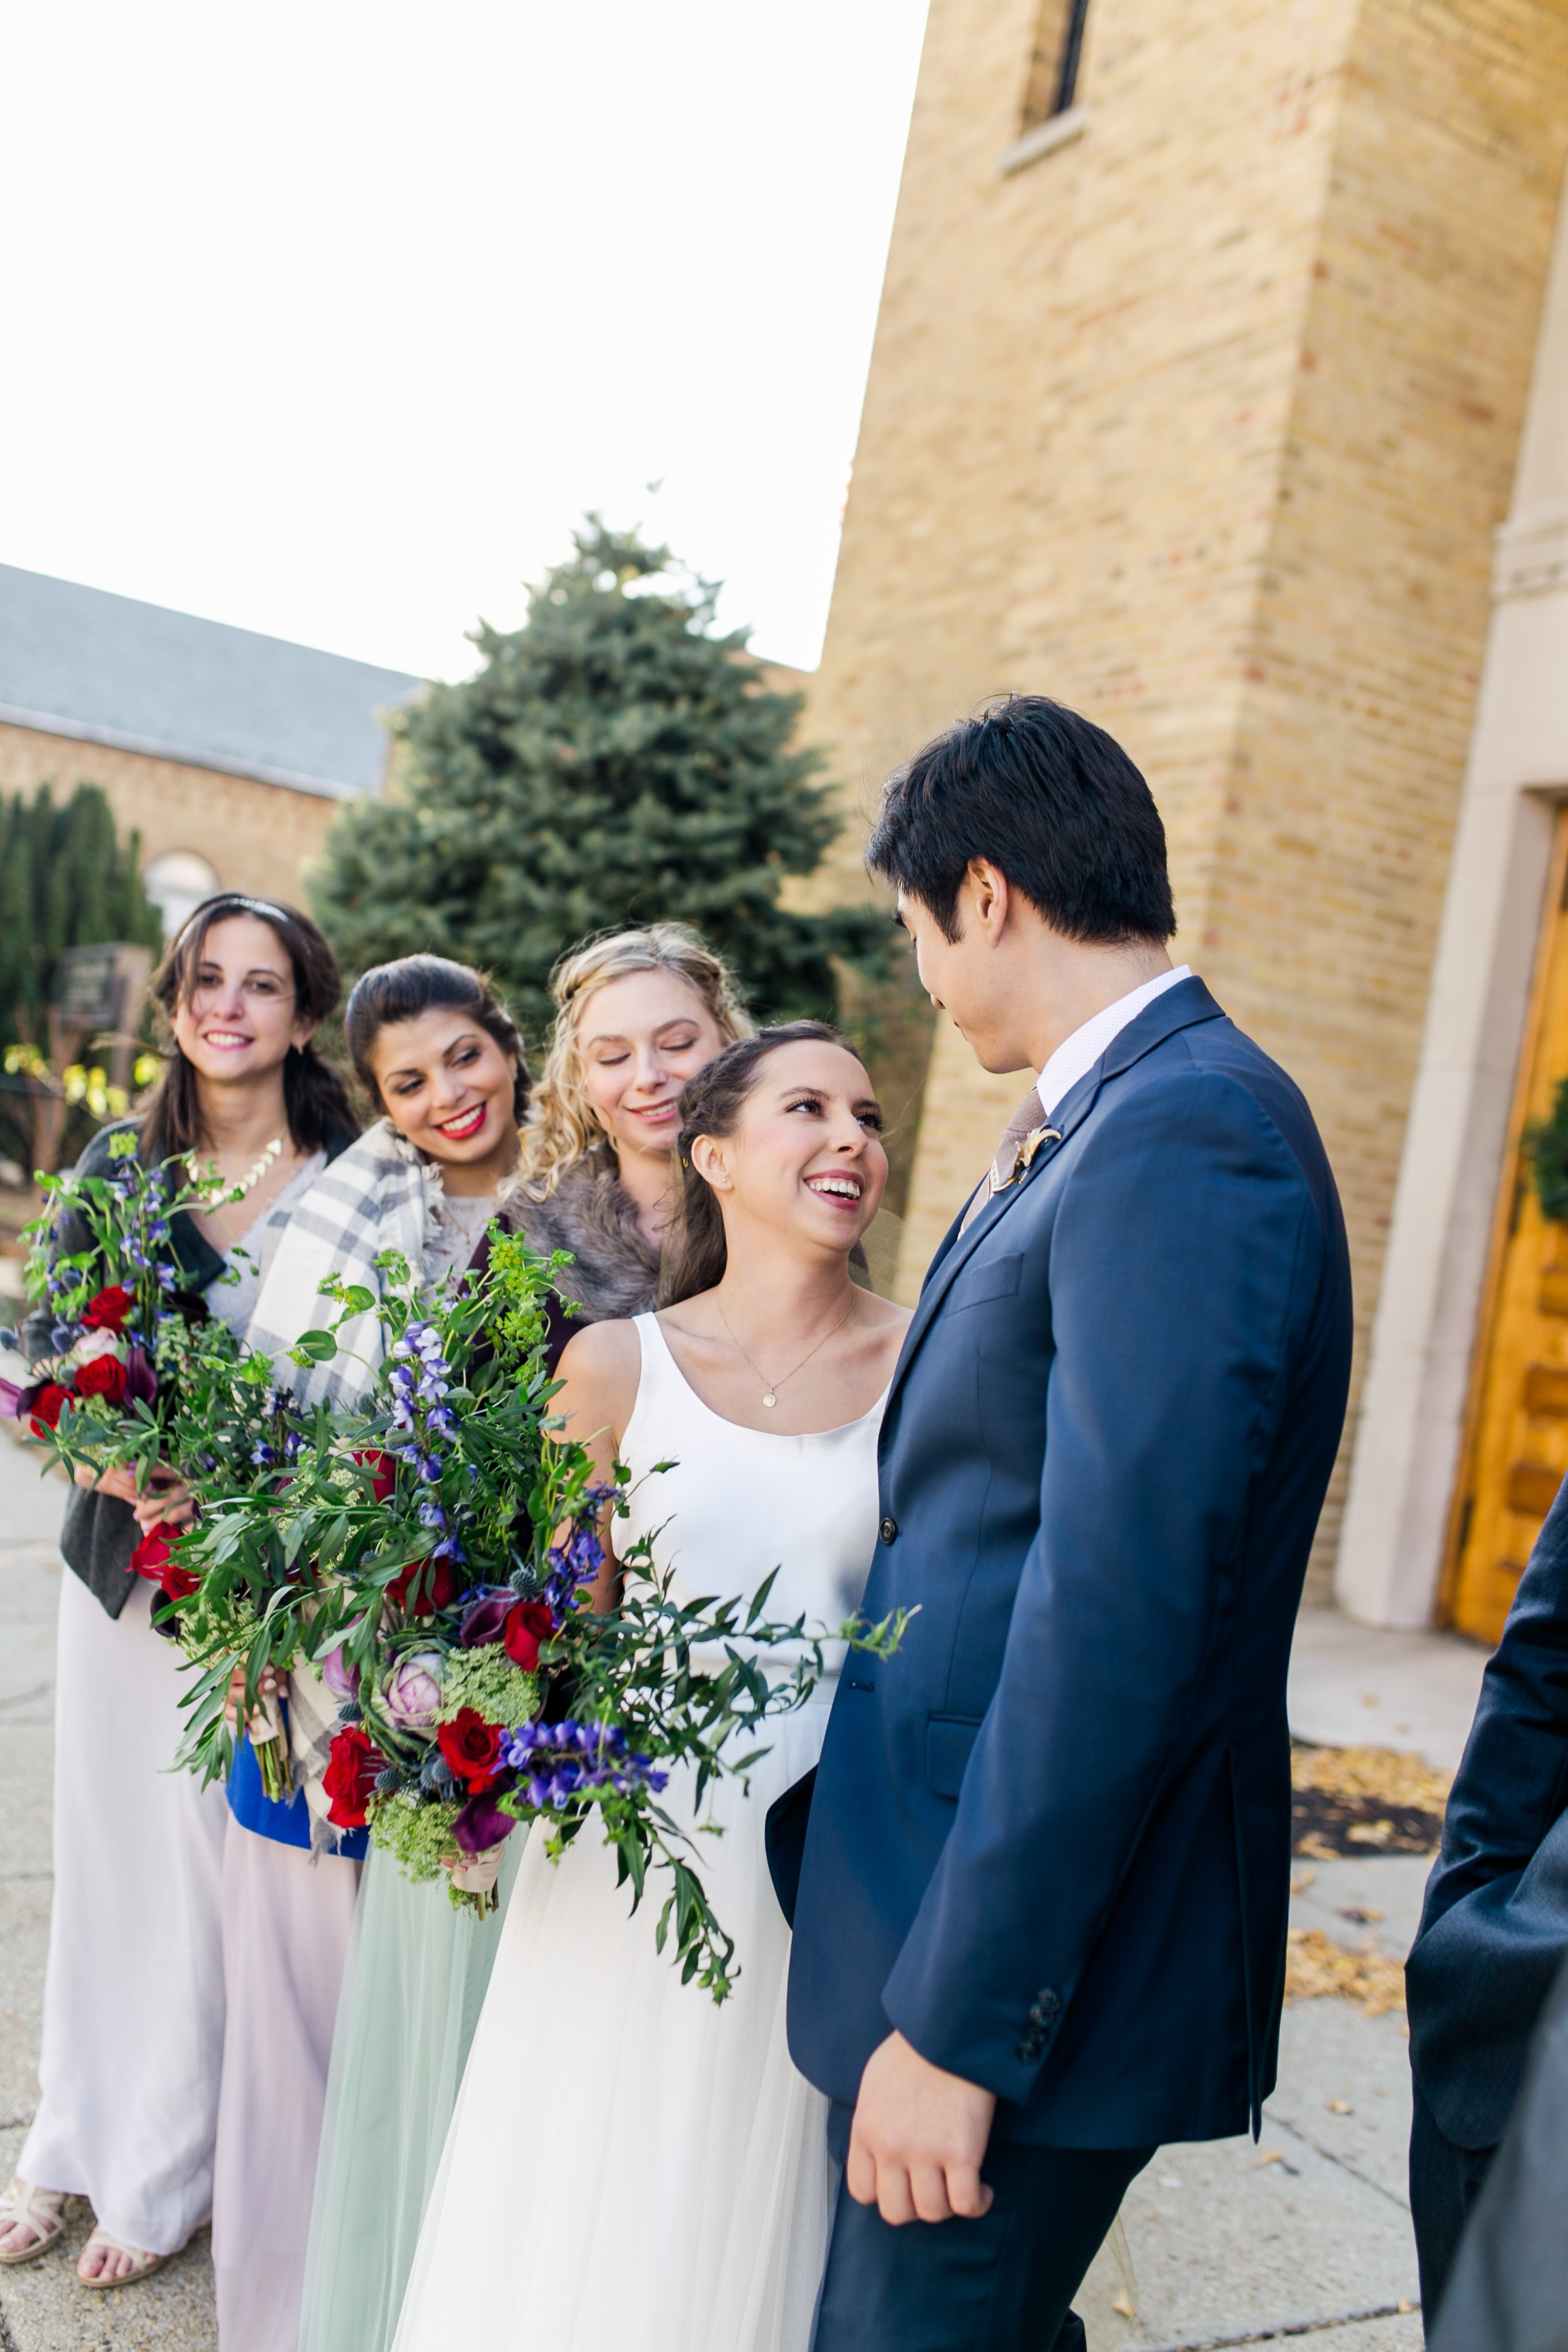 Stephanie was really waffling over whether to get a professional photographer for the wedding due to budget constraints. (Image: Brandon C. Photography)